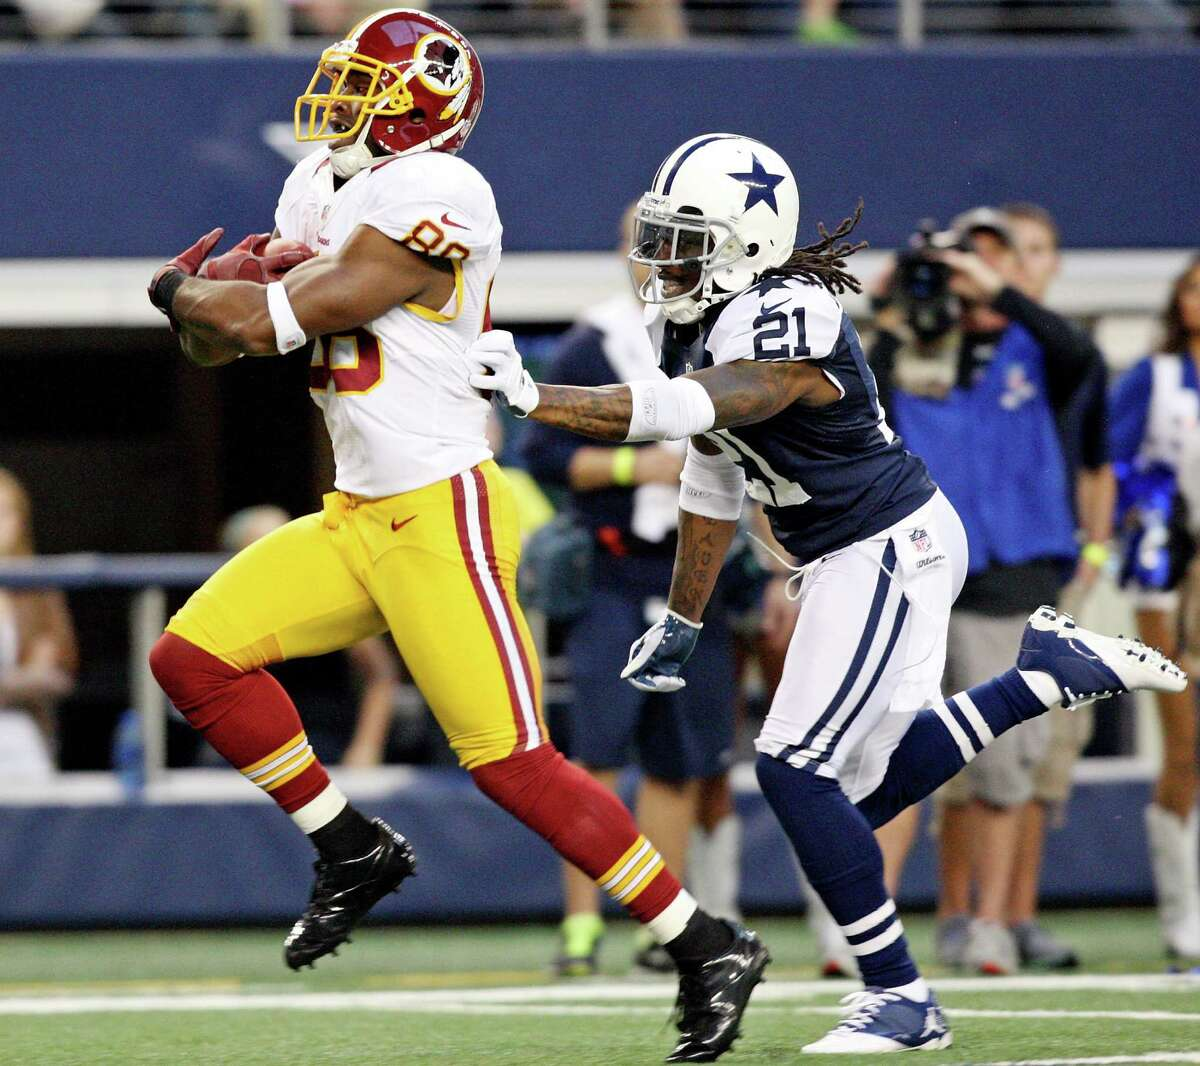 Washington Redskins' Pierre Gar�on heads to the end zone for a touchdown ahead of Dallas Cowboys' Mike Jenkins during first half action Thursday Nov. 22, 2012 at Cowboys Stadium in Arlington, Tx.